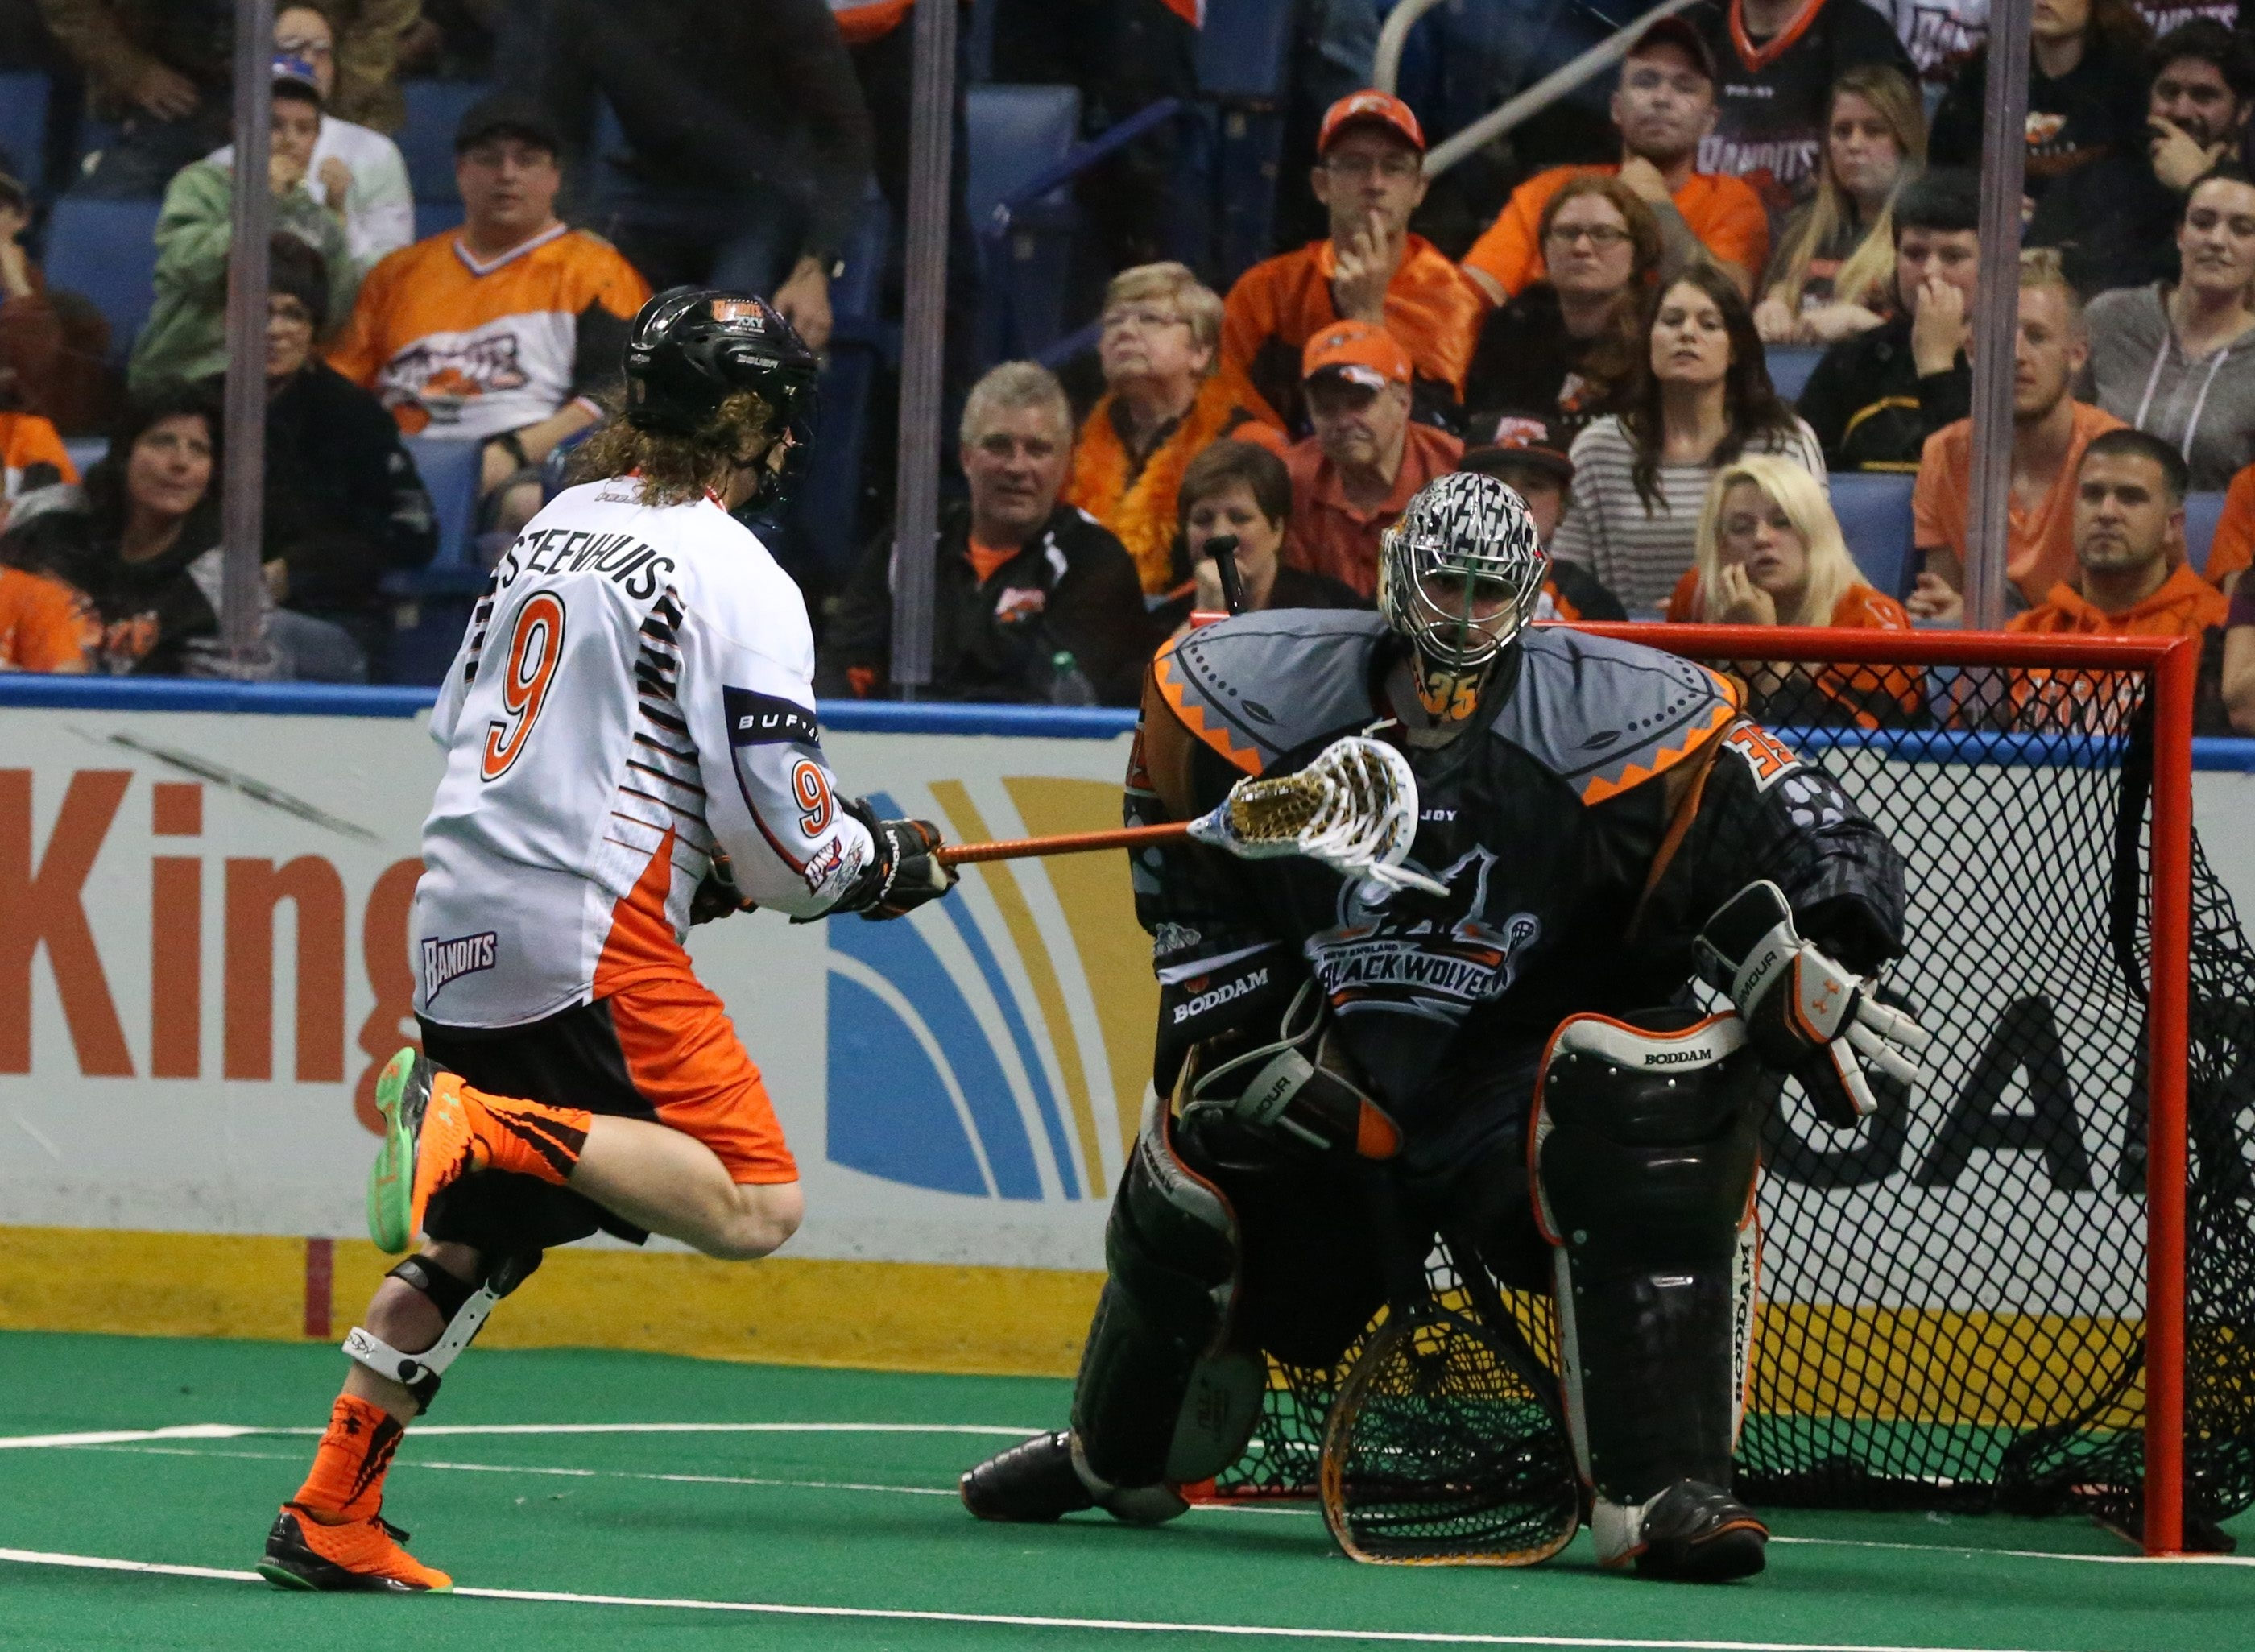 Mark Steenhuis scored on a penalty shot in the final minutes to wrap up the Bandits' victory over the Black Wolves on Saturday night.